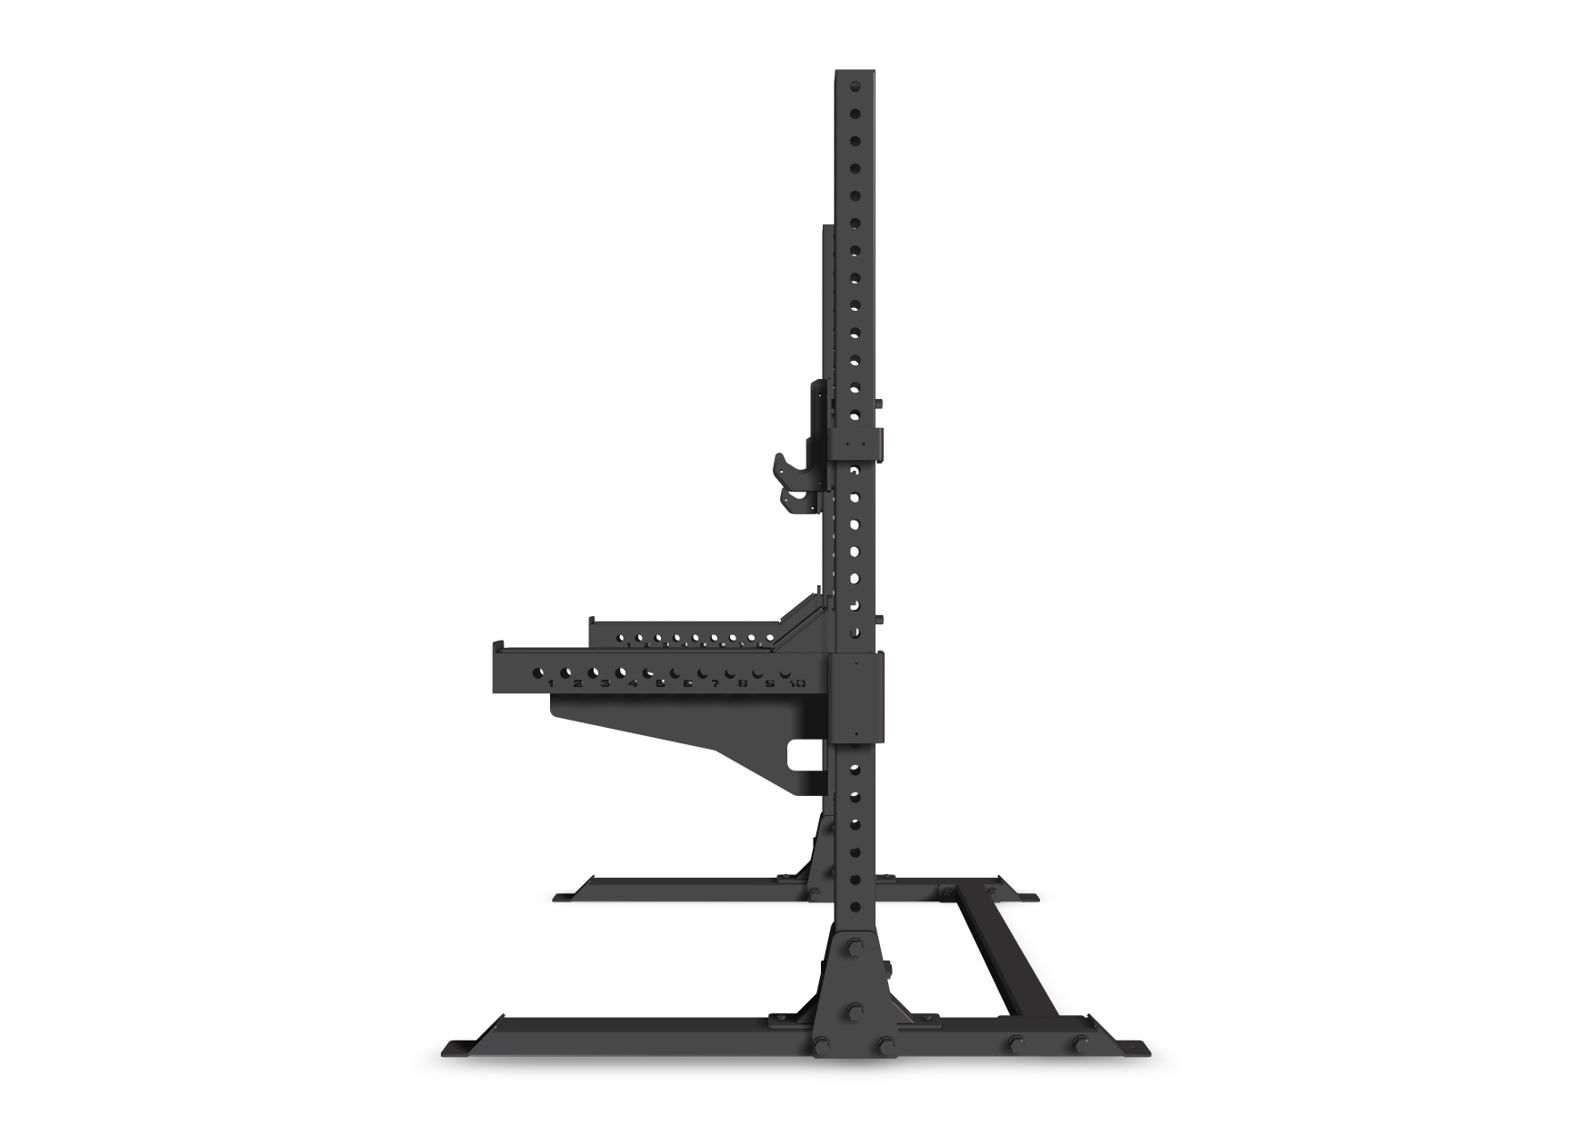 Squat Rack 3x3 inch - heavy duty squat stand